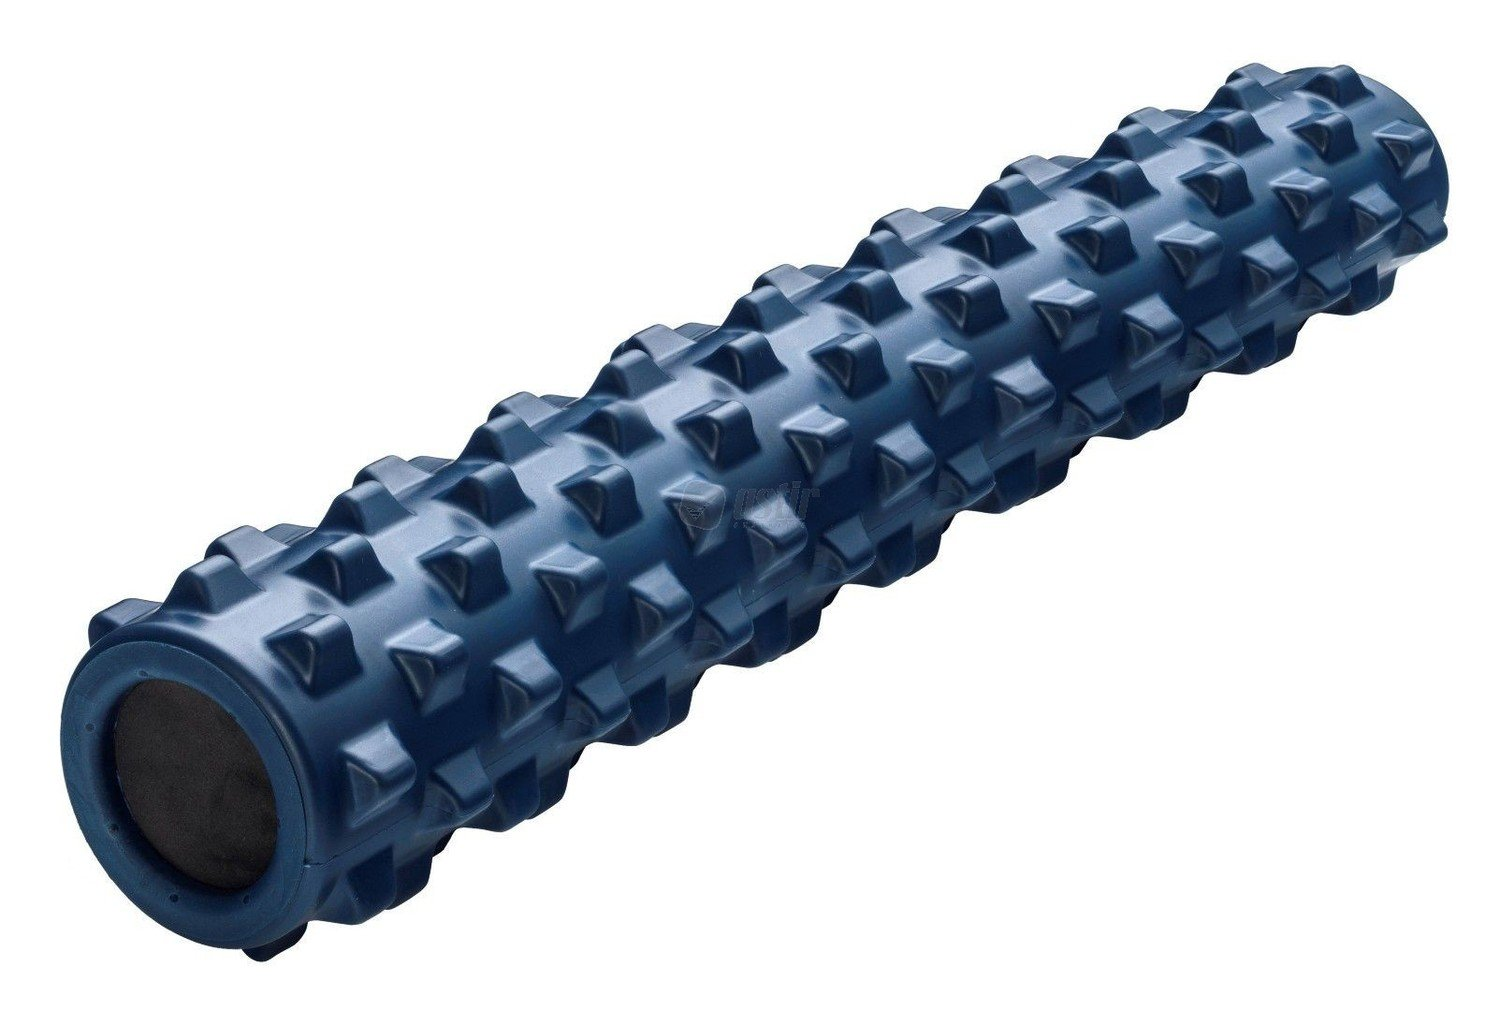 Rugged Fortress Foam Roller Long Length 77.5cm